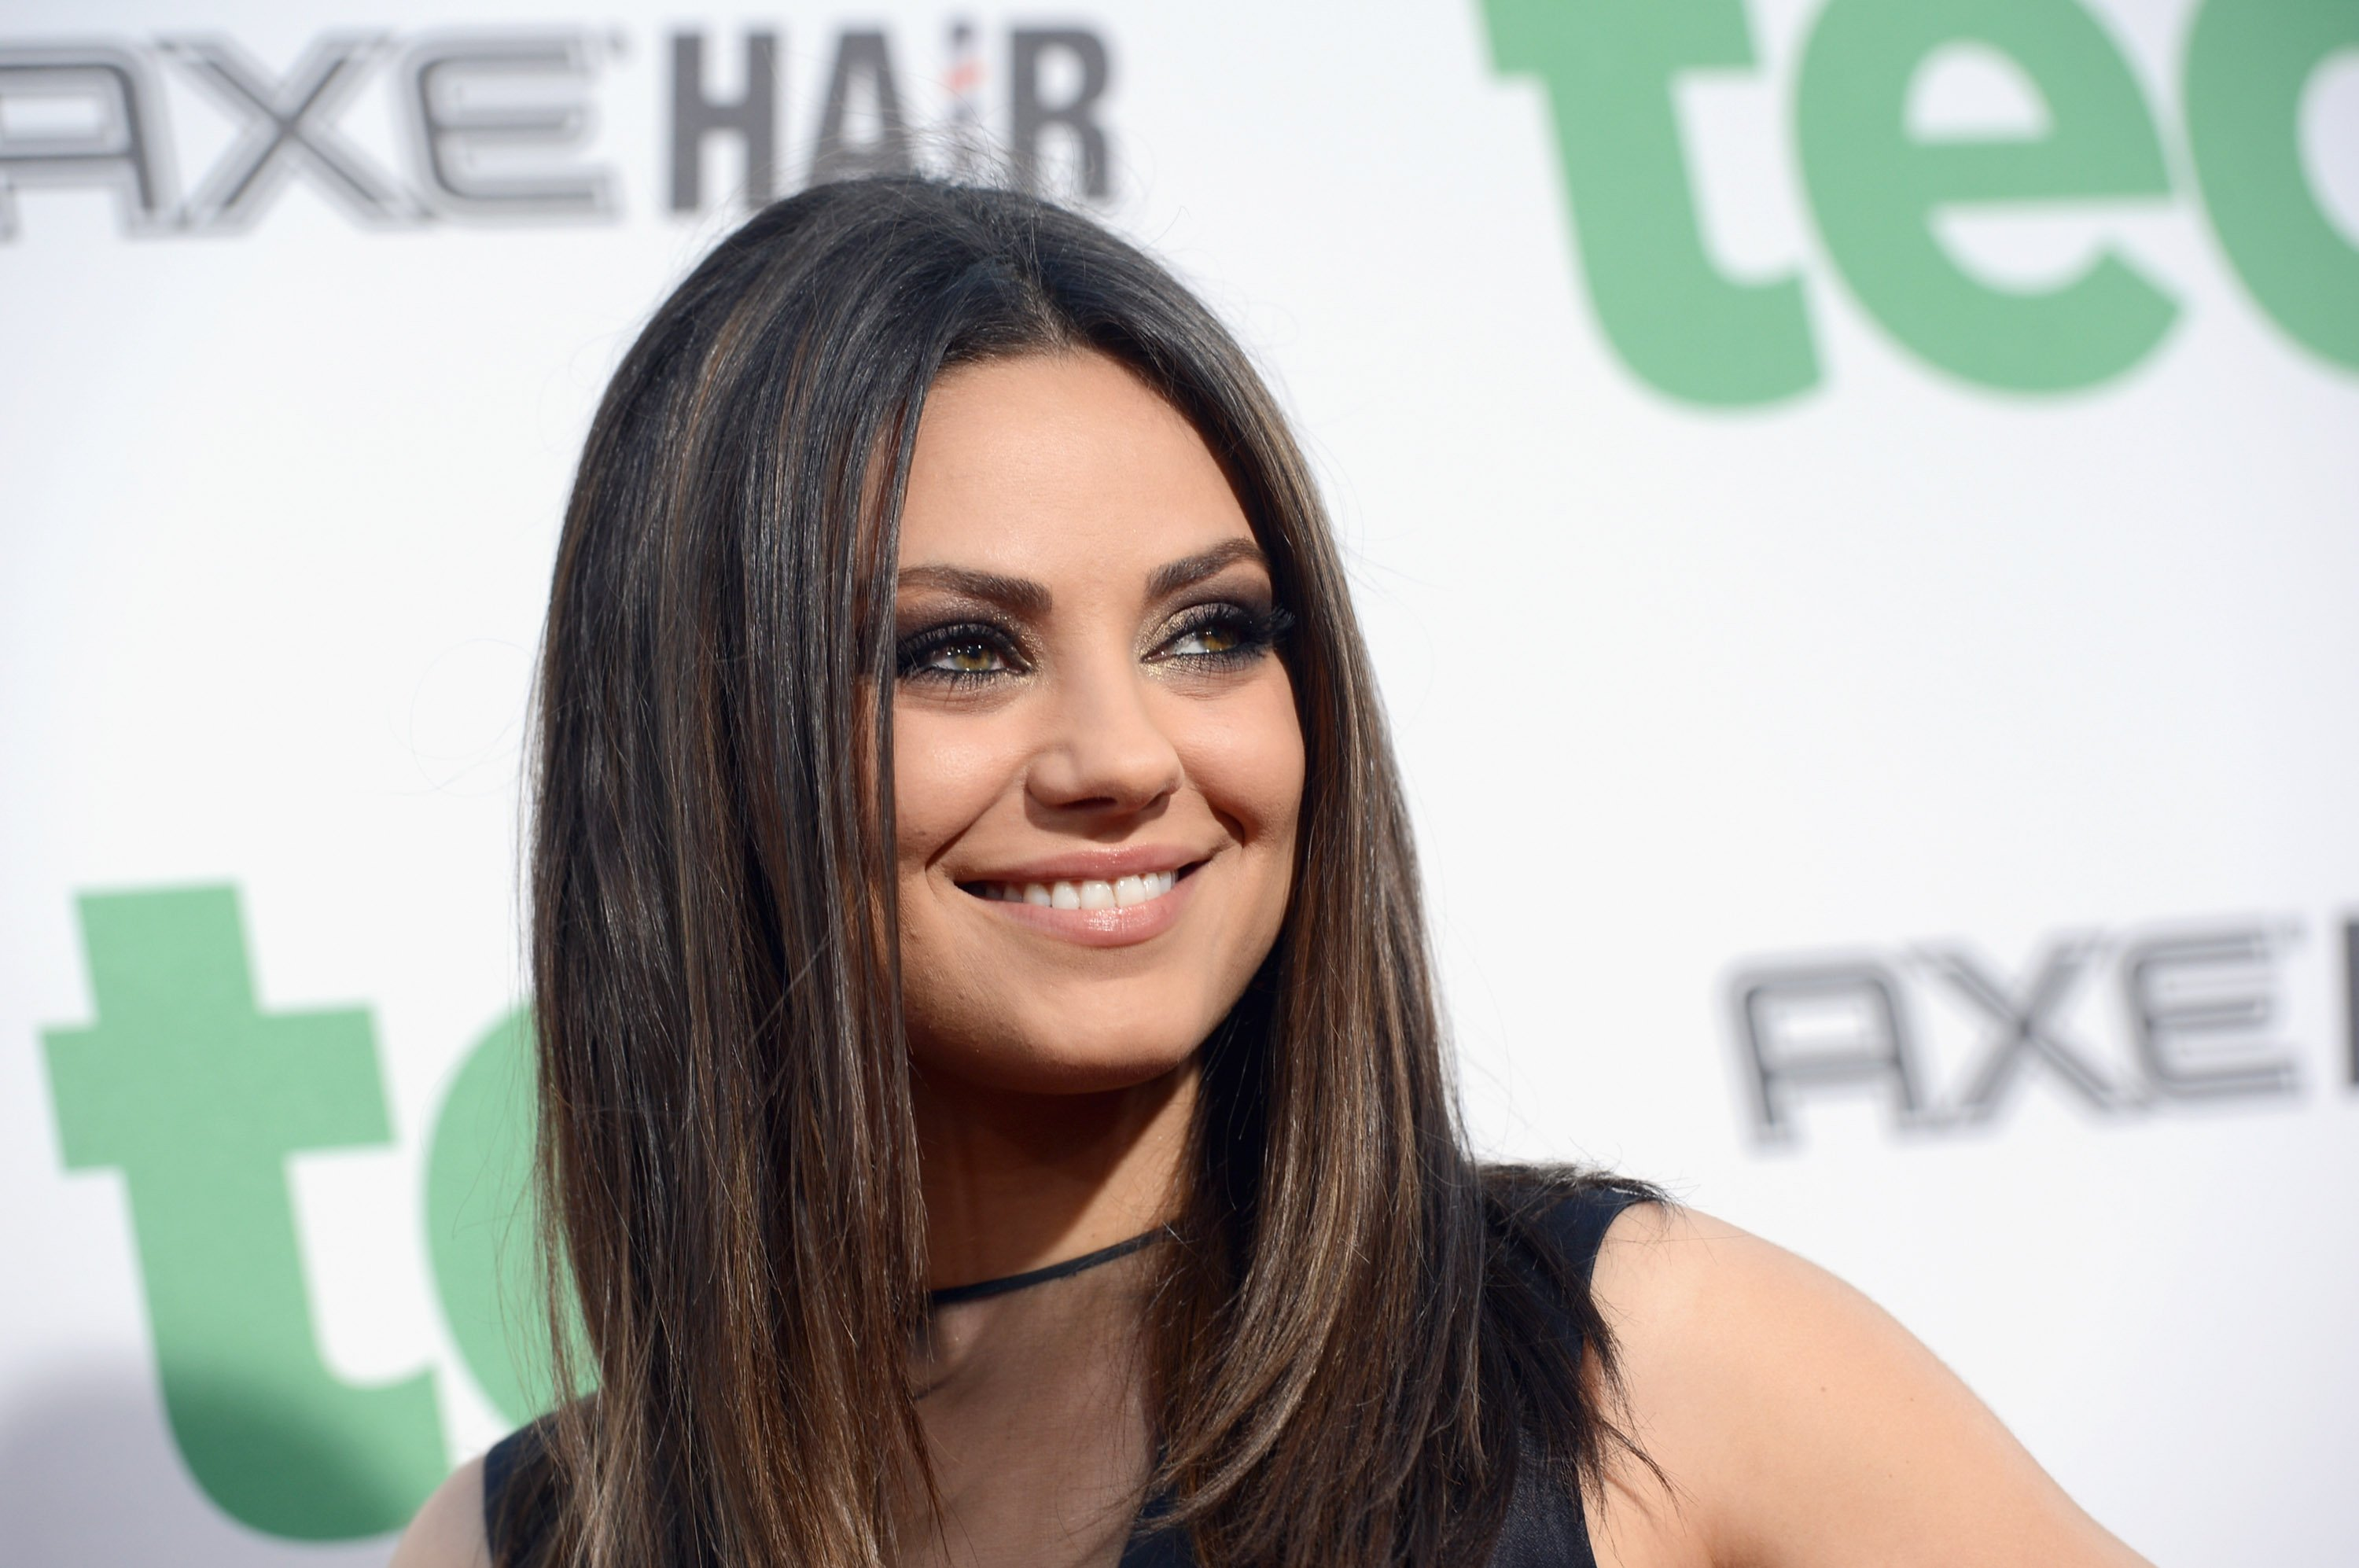 "Image Credits: Getty Images / Kevin Winter | Actress Mila Kunis arrives at the Premiere of Universal Pictures' ""Ted"" sponsored in part by AXE Hair at Grauman's Chinese Theatre on June 21, 2012 in Hollywood, California."